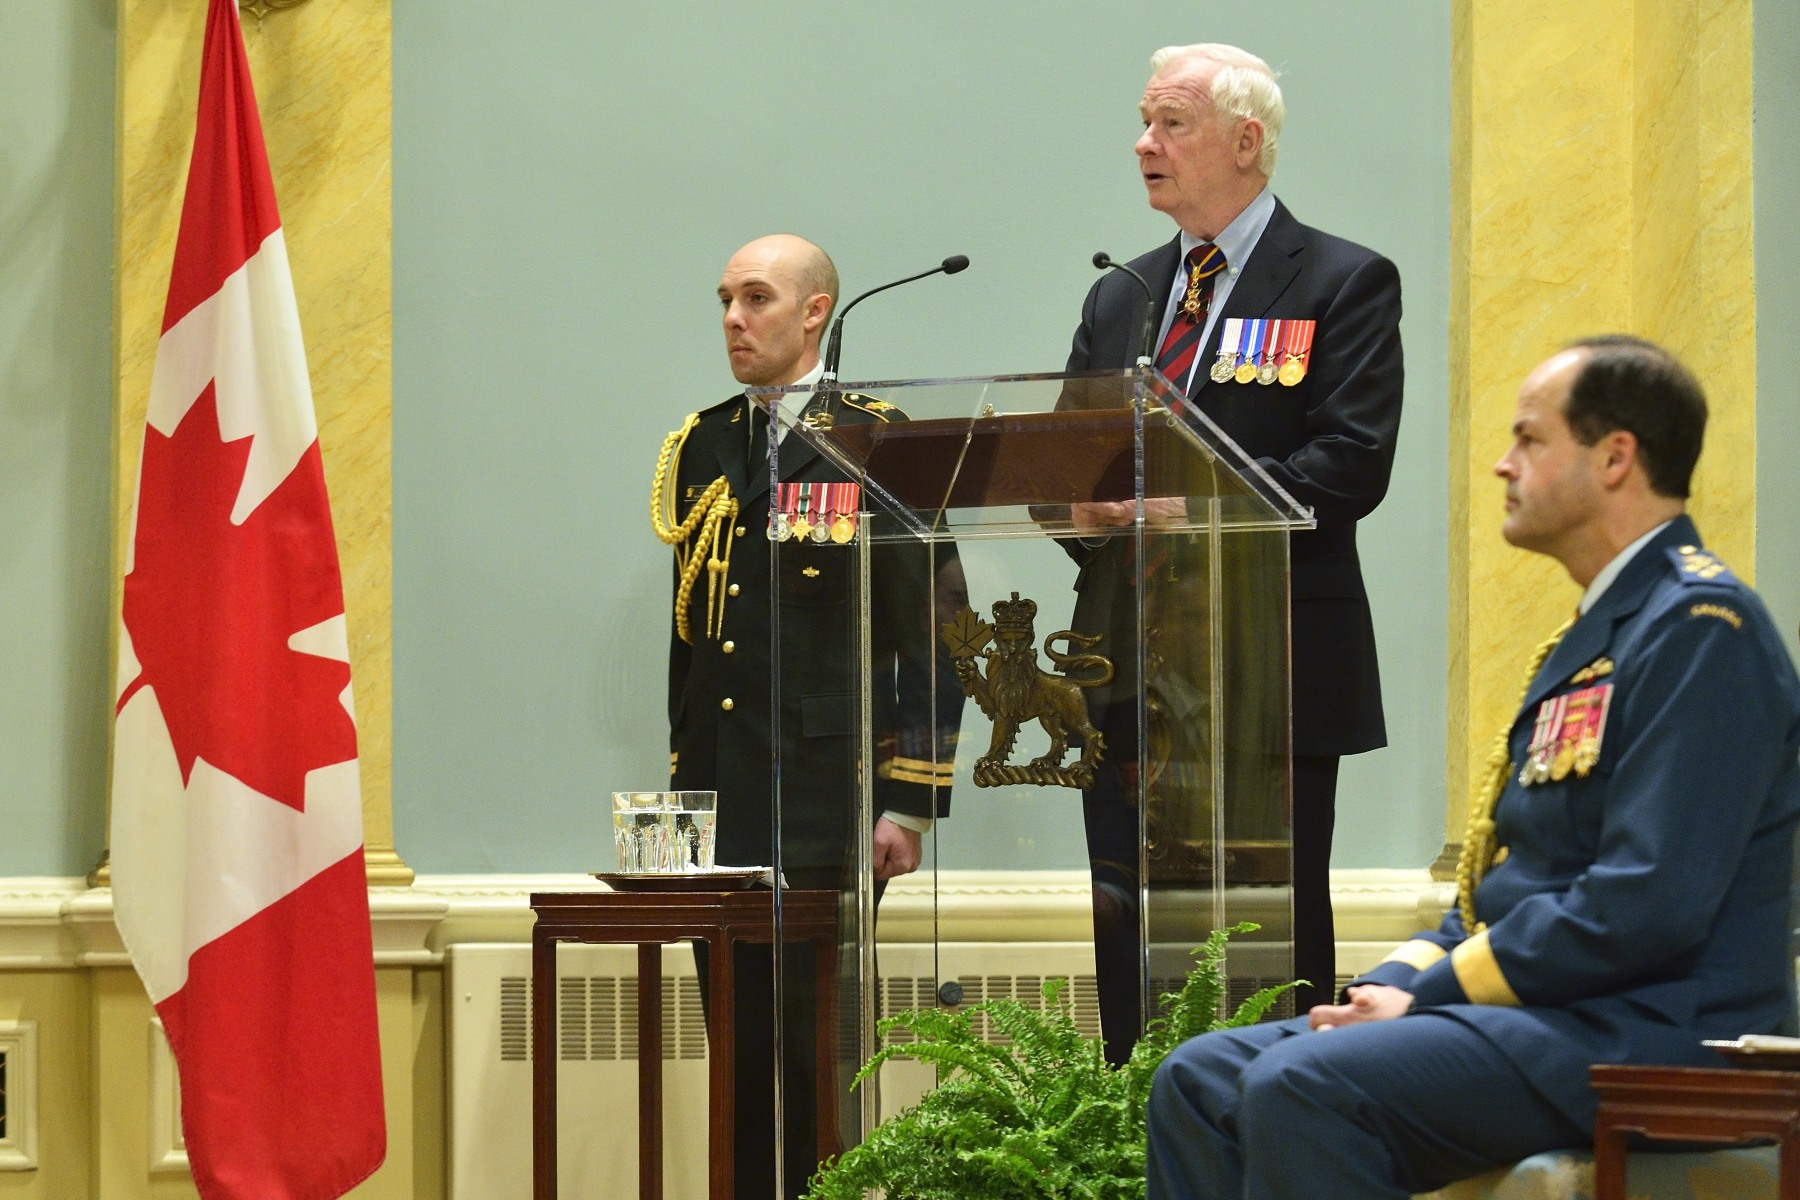 """Whenever I have met with members of the Forces, here at home or overseas, I am particularly struck by the importance they place on service,"" said the Governor General and Commander-in-Chief of Canada. ""You do so with little thought to your own safety, but plenty of thought for the safety of others. You are peacekeepers. You rebuild that which has been destroyed and preserve what is most precious to us. You defend our values and ideals. You leave behind family for months at a time because you know you are needed."""